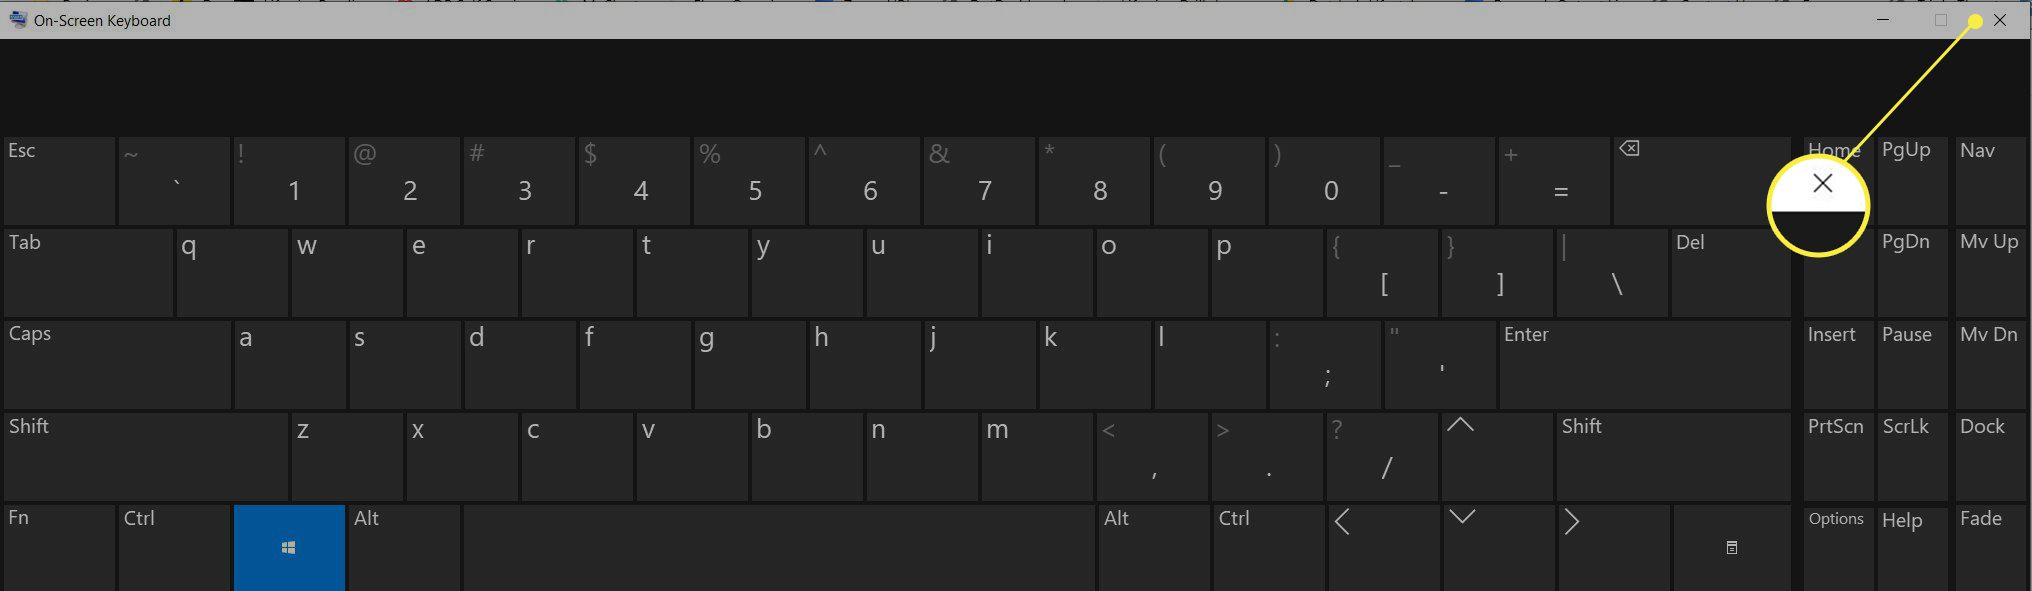 On-screen keyboard with the close (X) highlighted